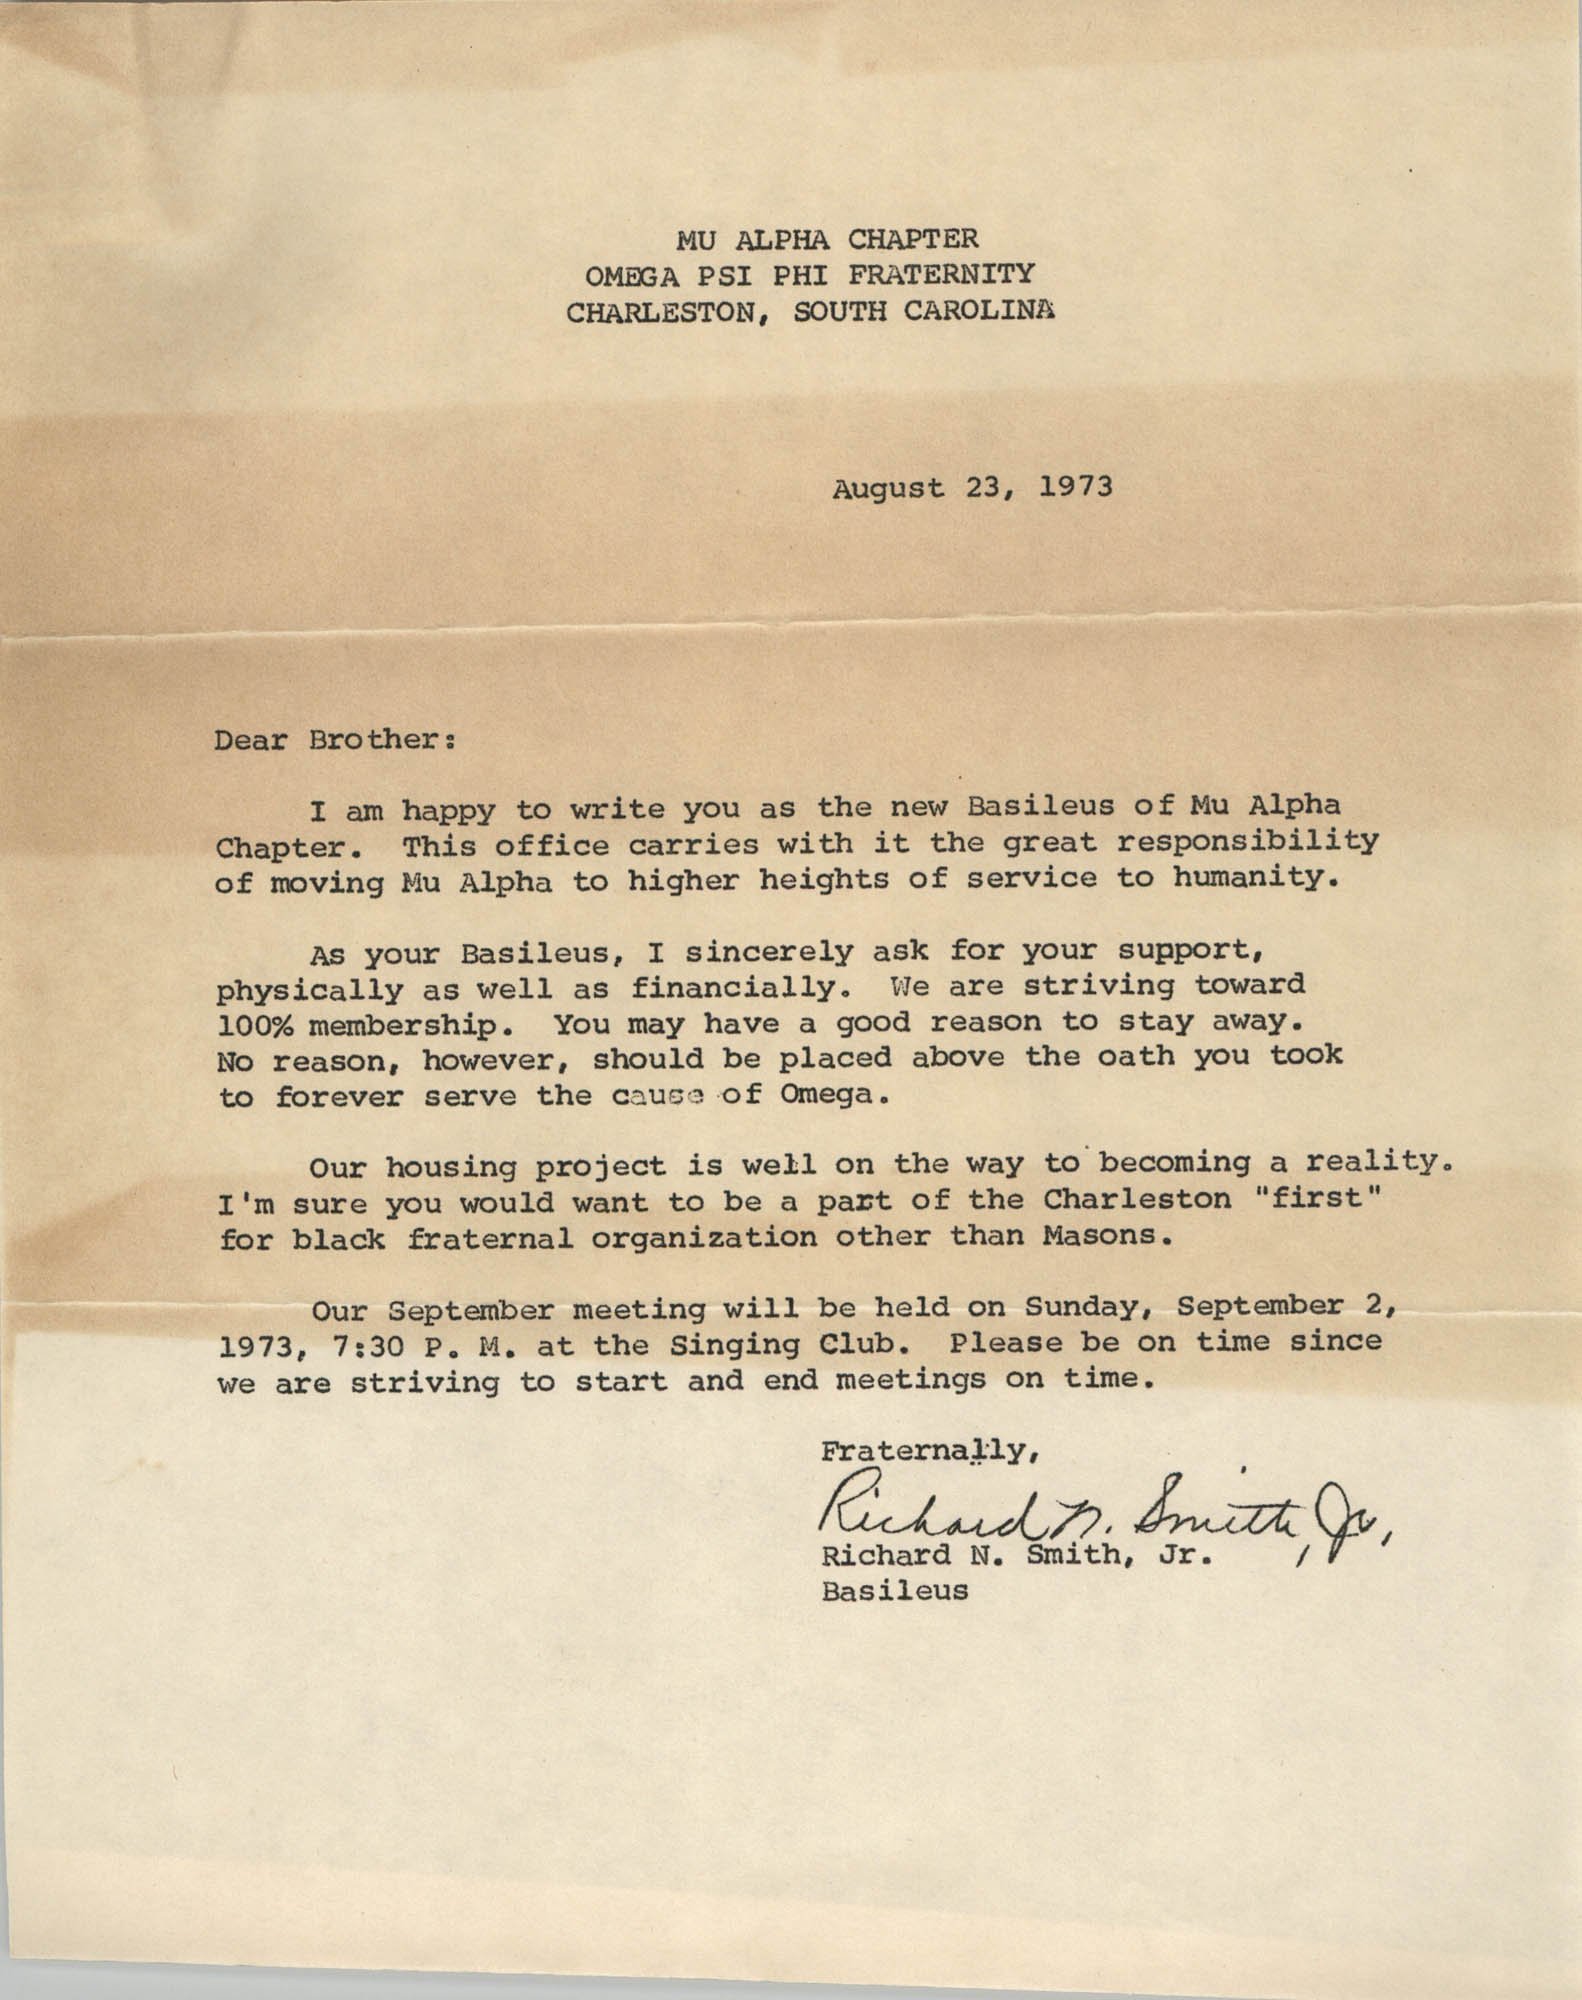 Letter from Richard N. Smith, Jr. to Mu Alpha Chapter of Omega Psi Phi Fraternity Brothers, August 23, 1973